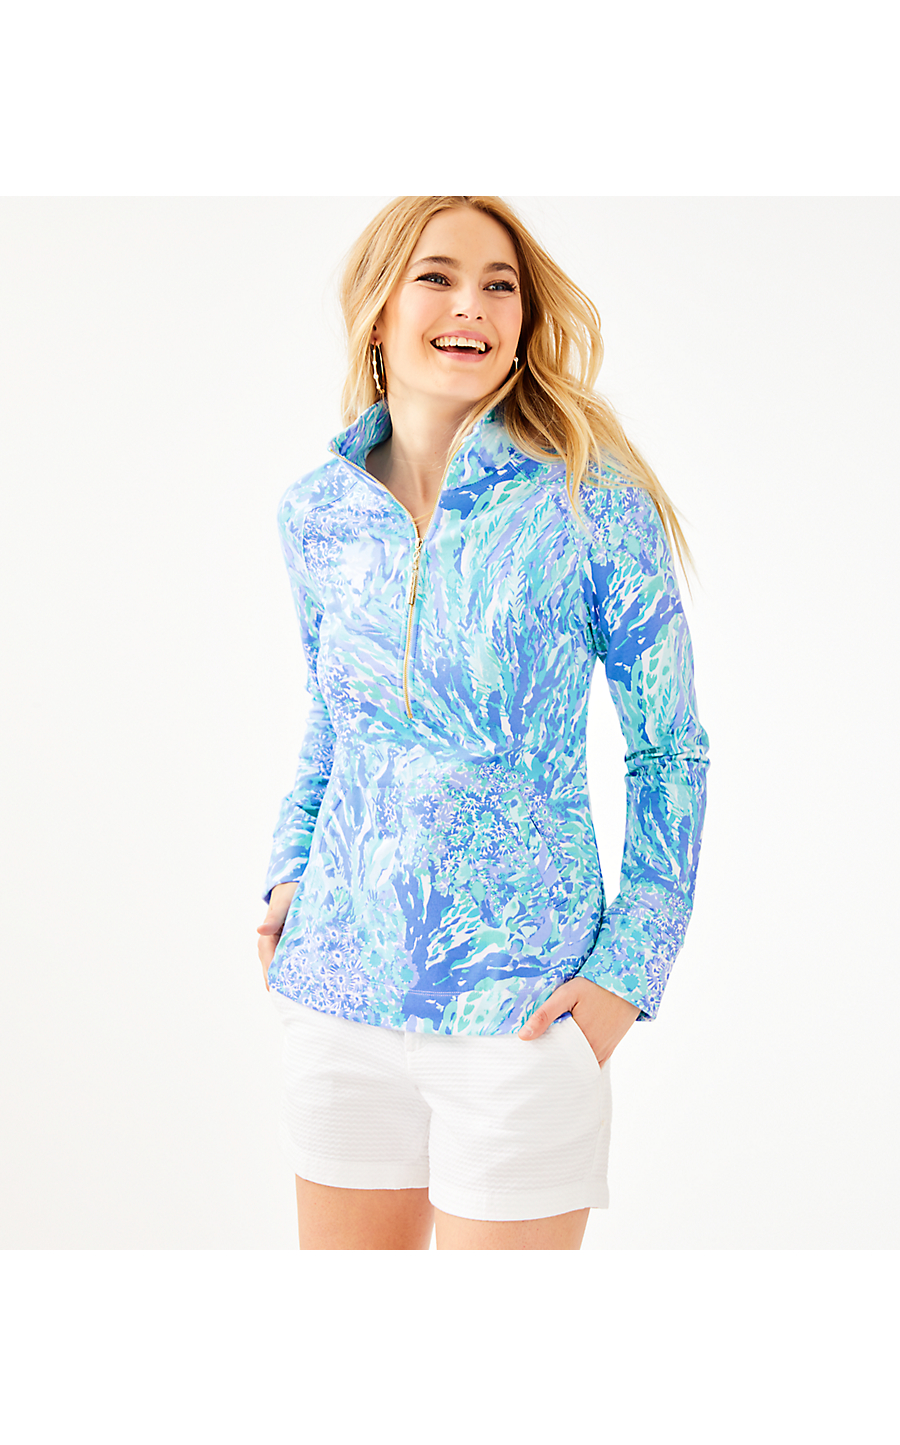 b1a57531096a95 UPF 50+ SKIPPER POPOVER - HEY HEY SOLEIL - Lilly Pulitzer Store ...